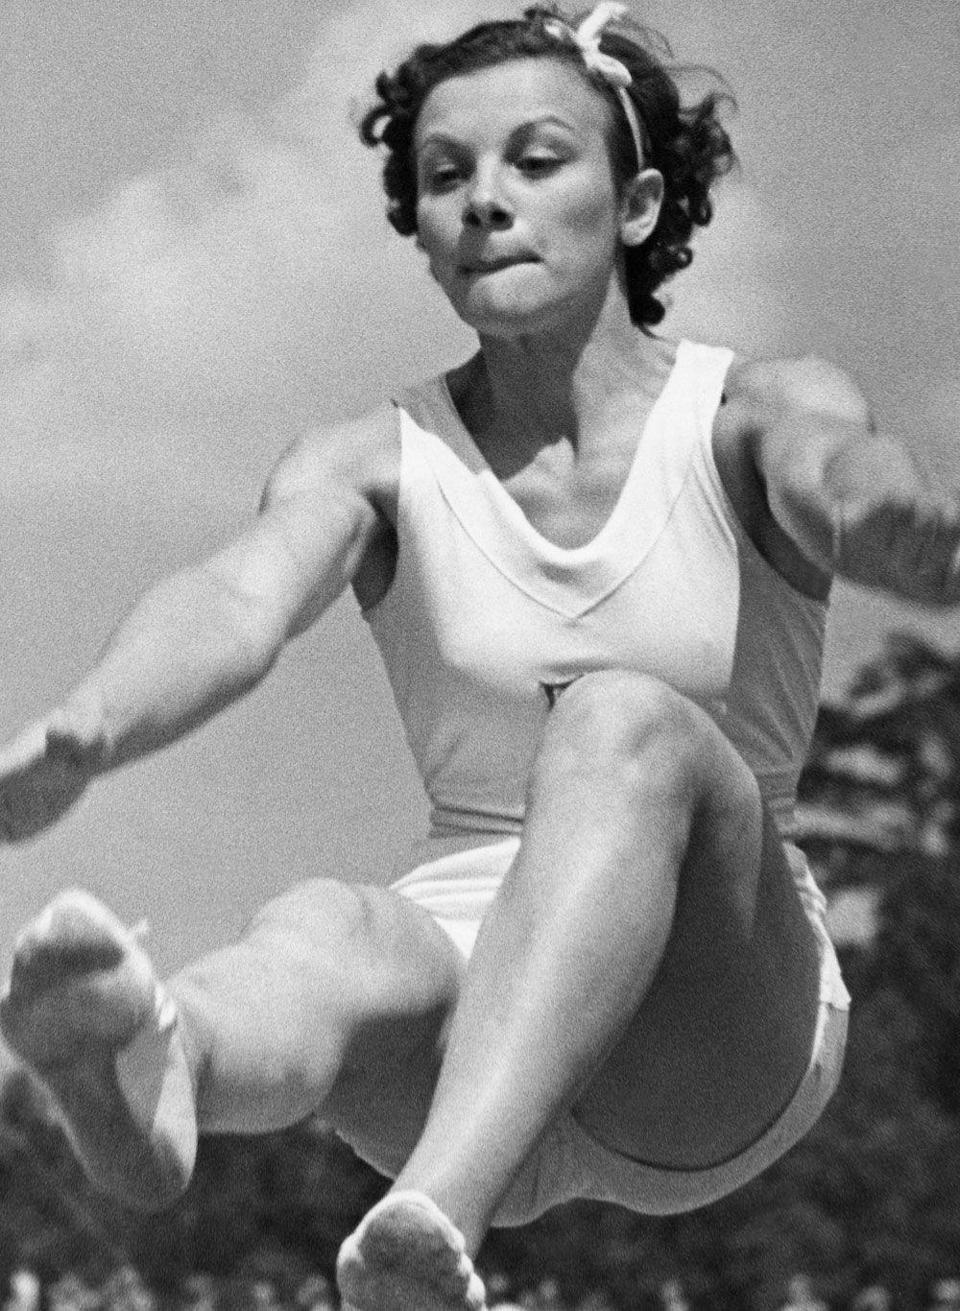 <p><em>Consetta Caruccio-Lenz</em><br></p><p>In a pre-spandex world, jumping over a pommel horse was a medal-worthy feat, even without flips and twists.</p>